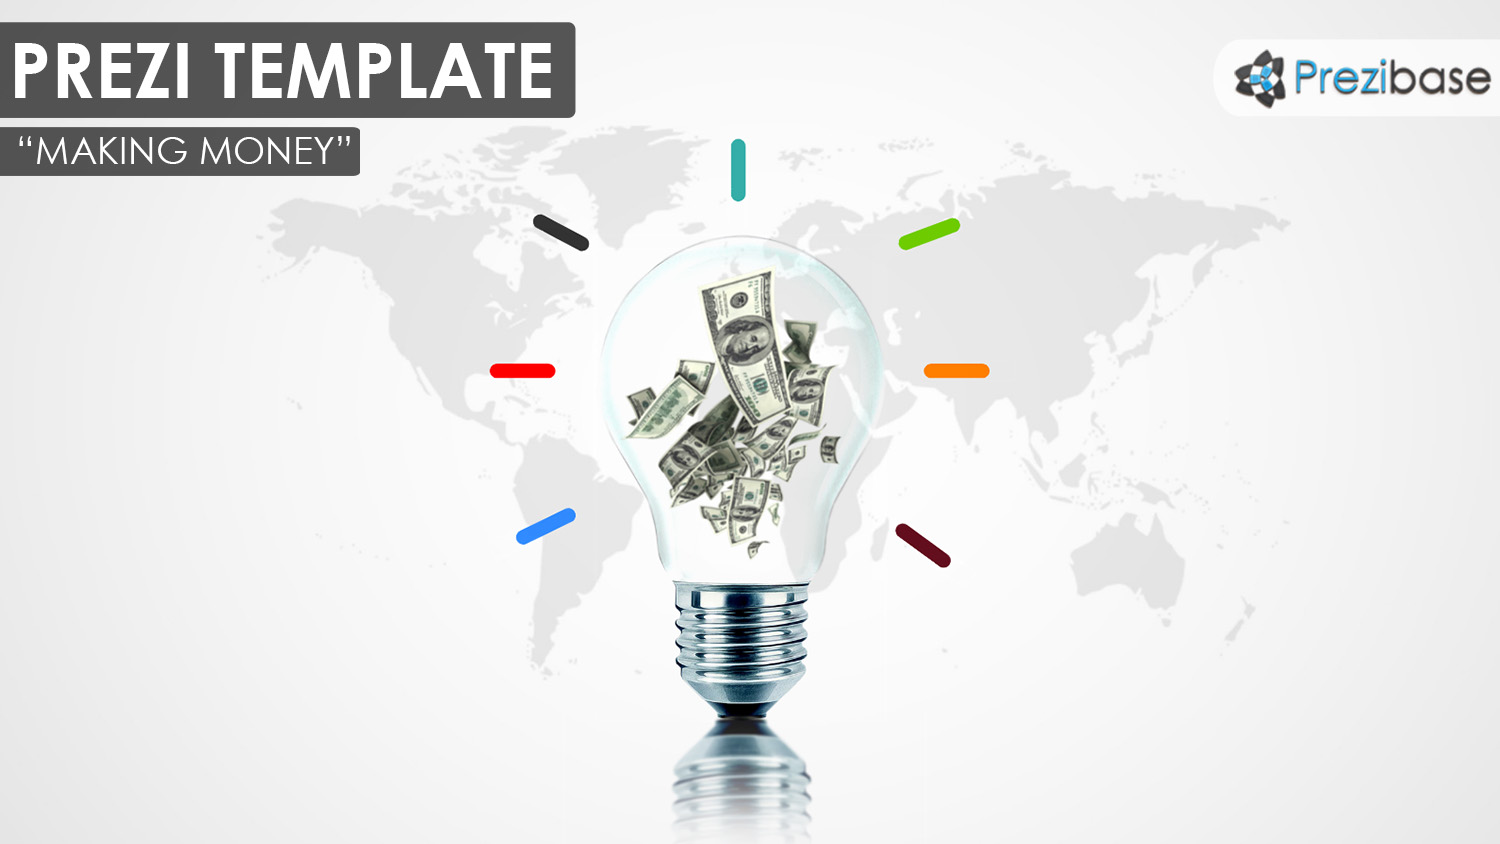 Prezi 3d Light Bulb Inside Money Dollars Ideas Business Prezi Template